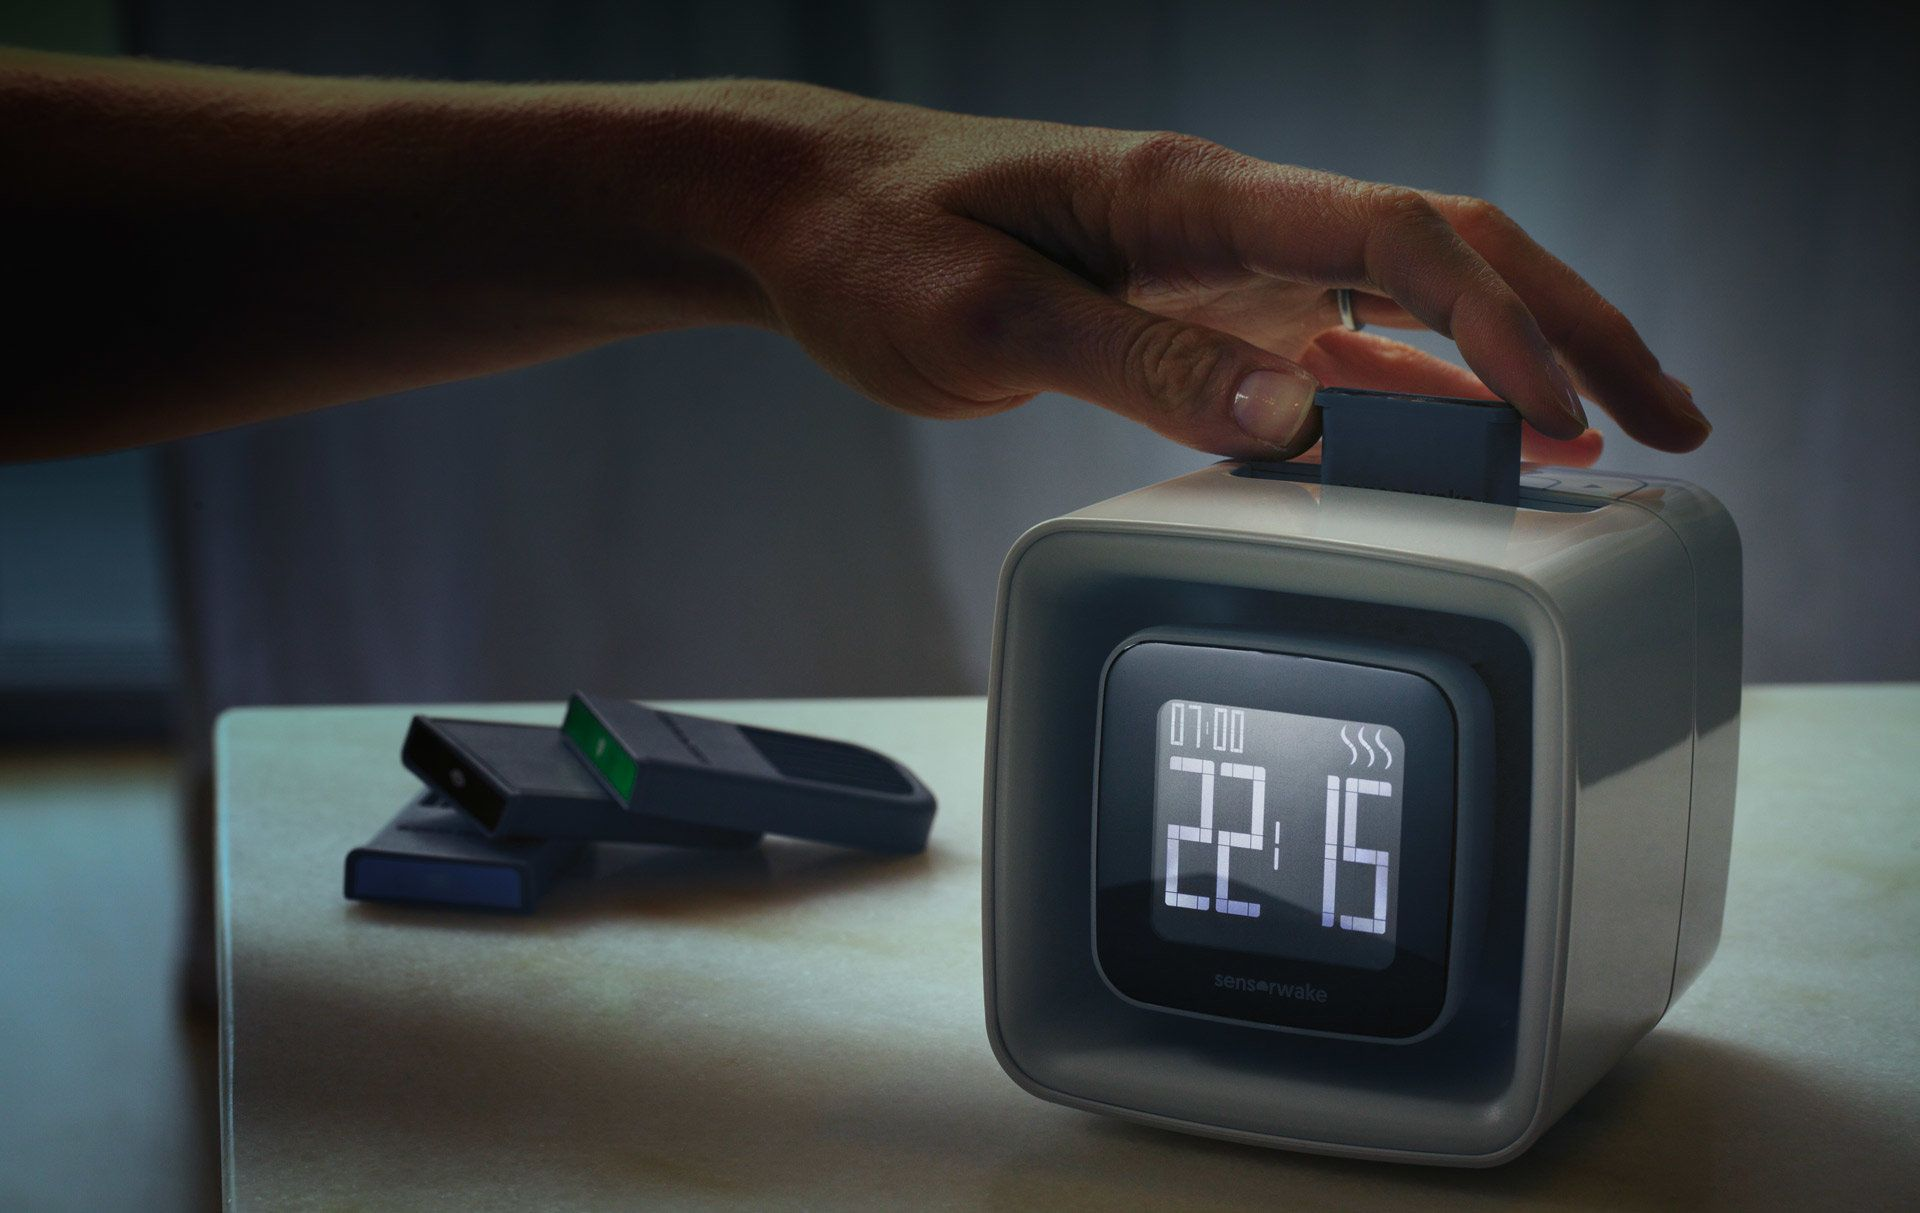 The SensorWakealarm clock wakes you with the scent of your choice― butter croissants, espresso...